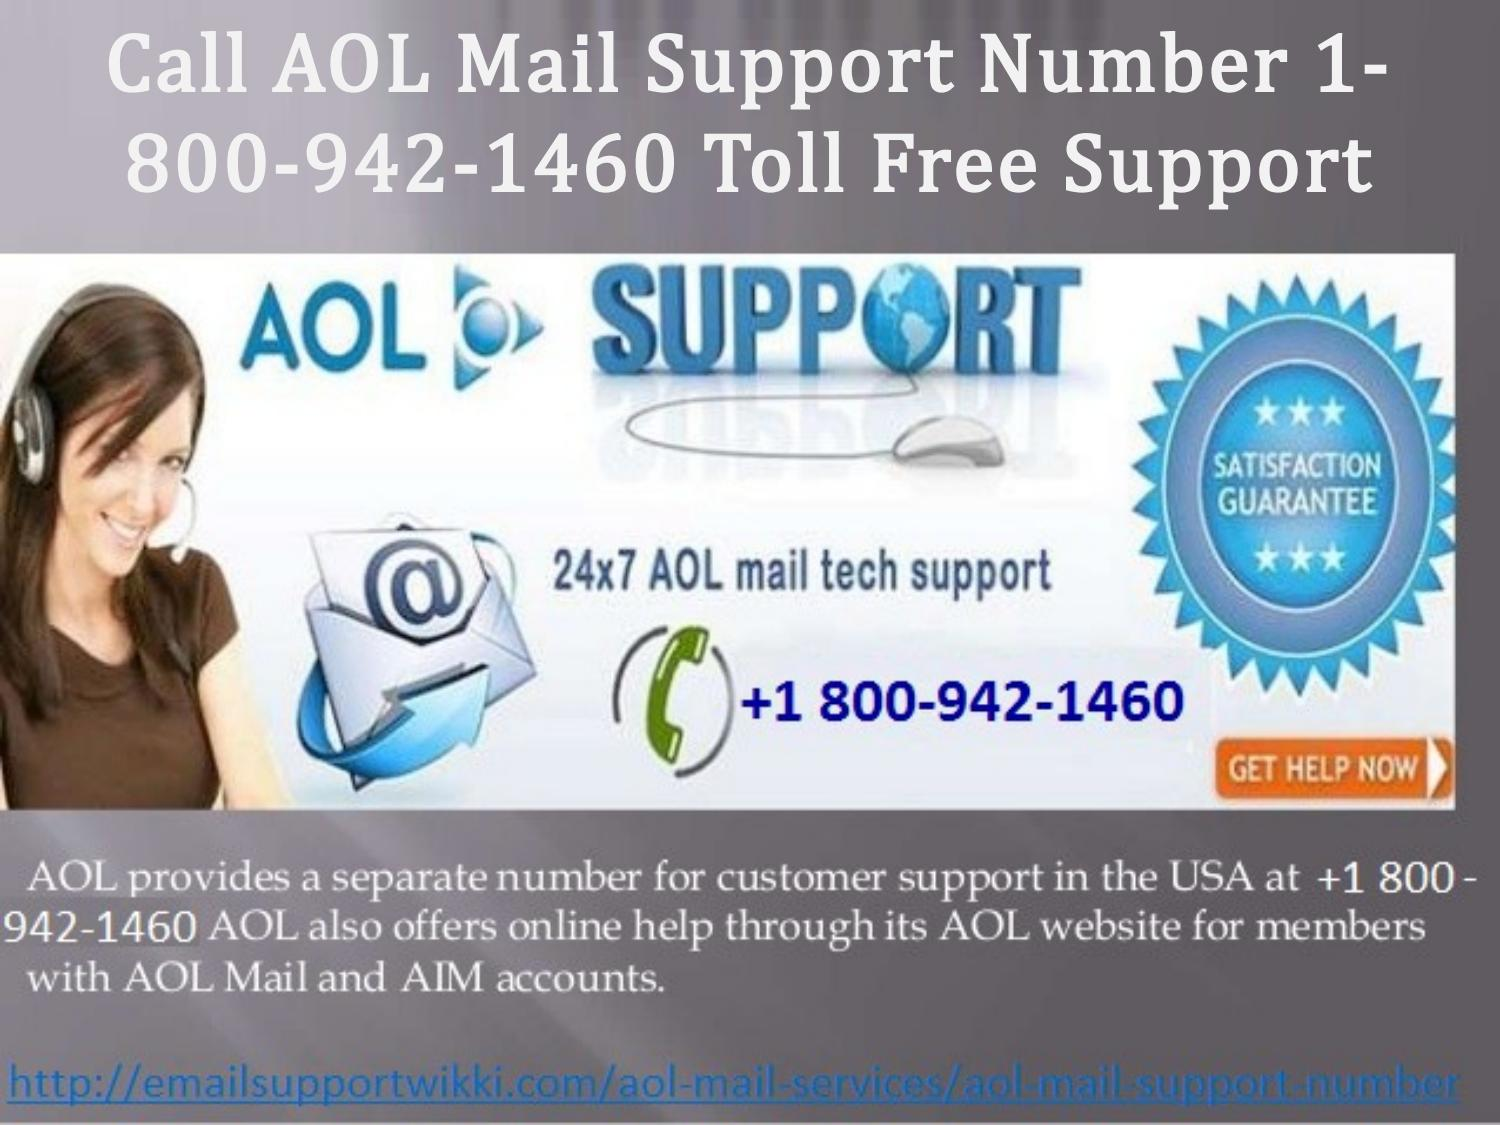 call aol mail support number 1-800-942-1460 toll free support by